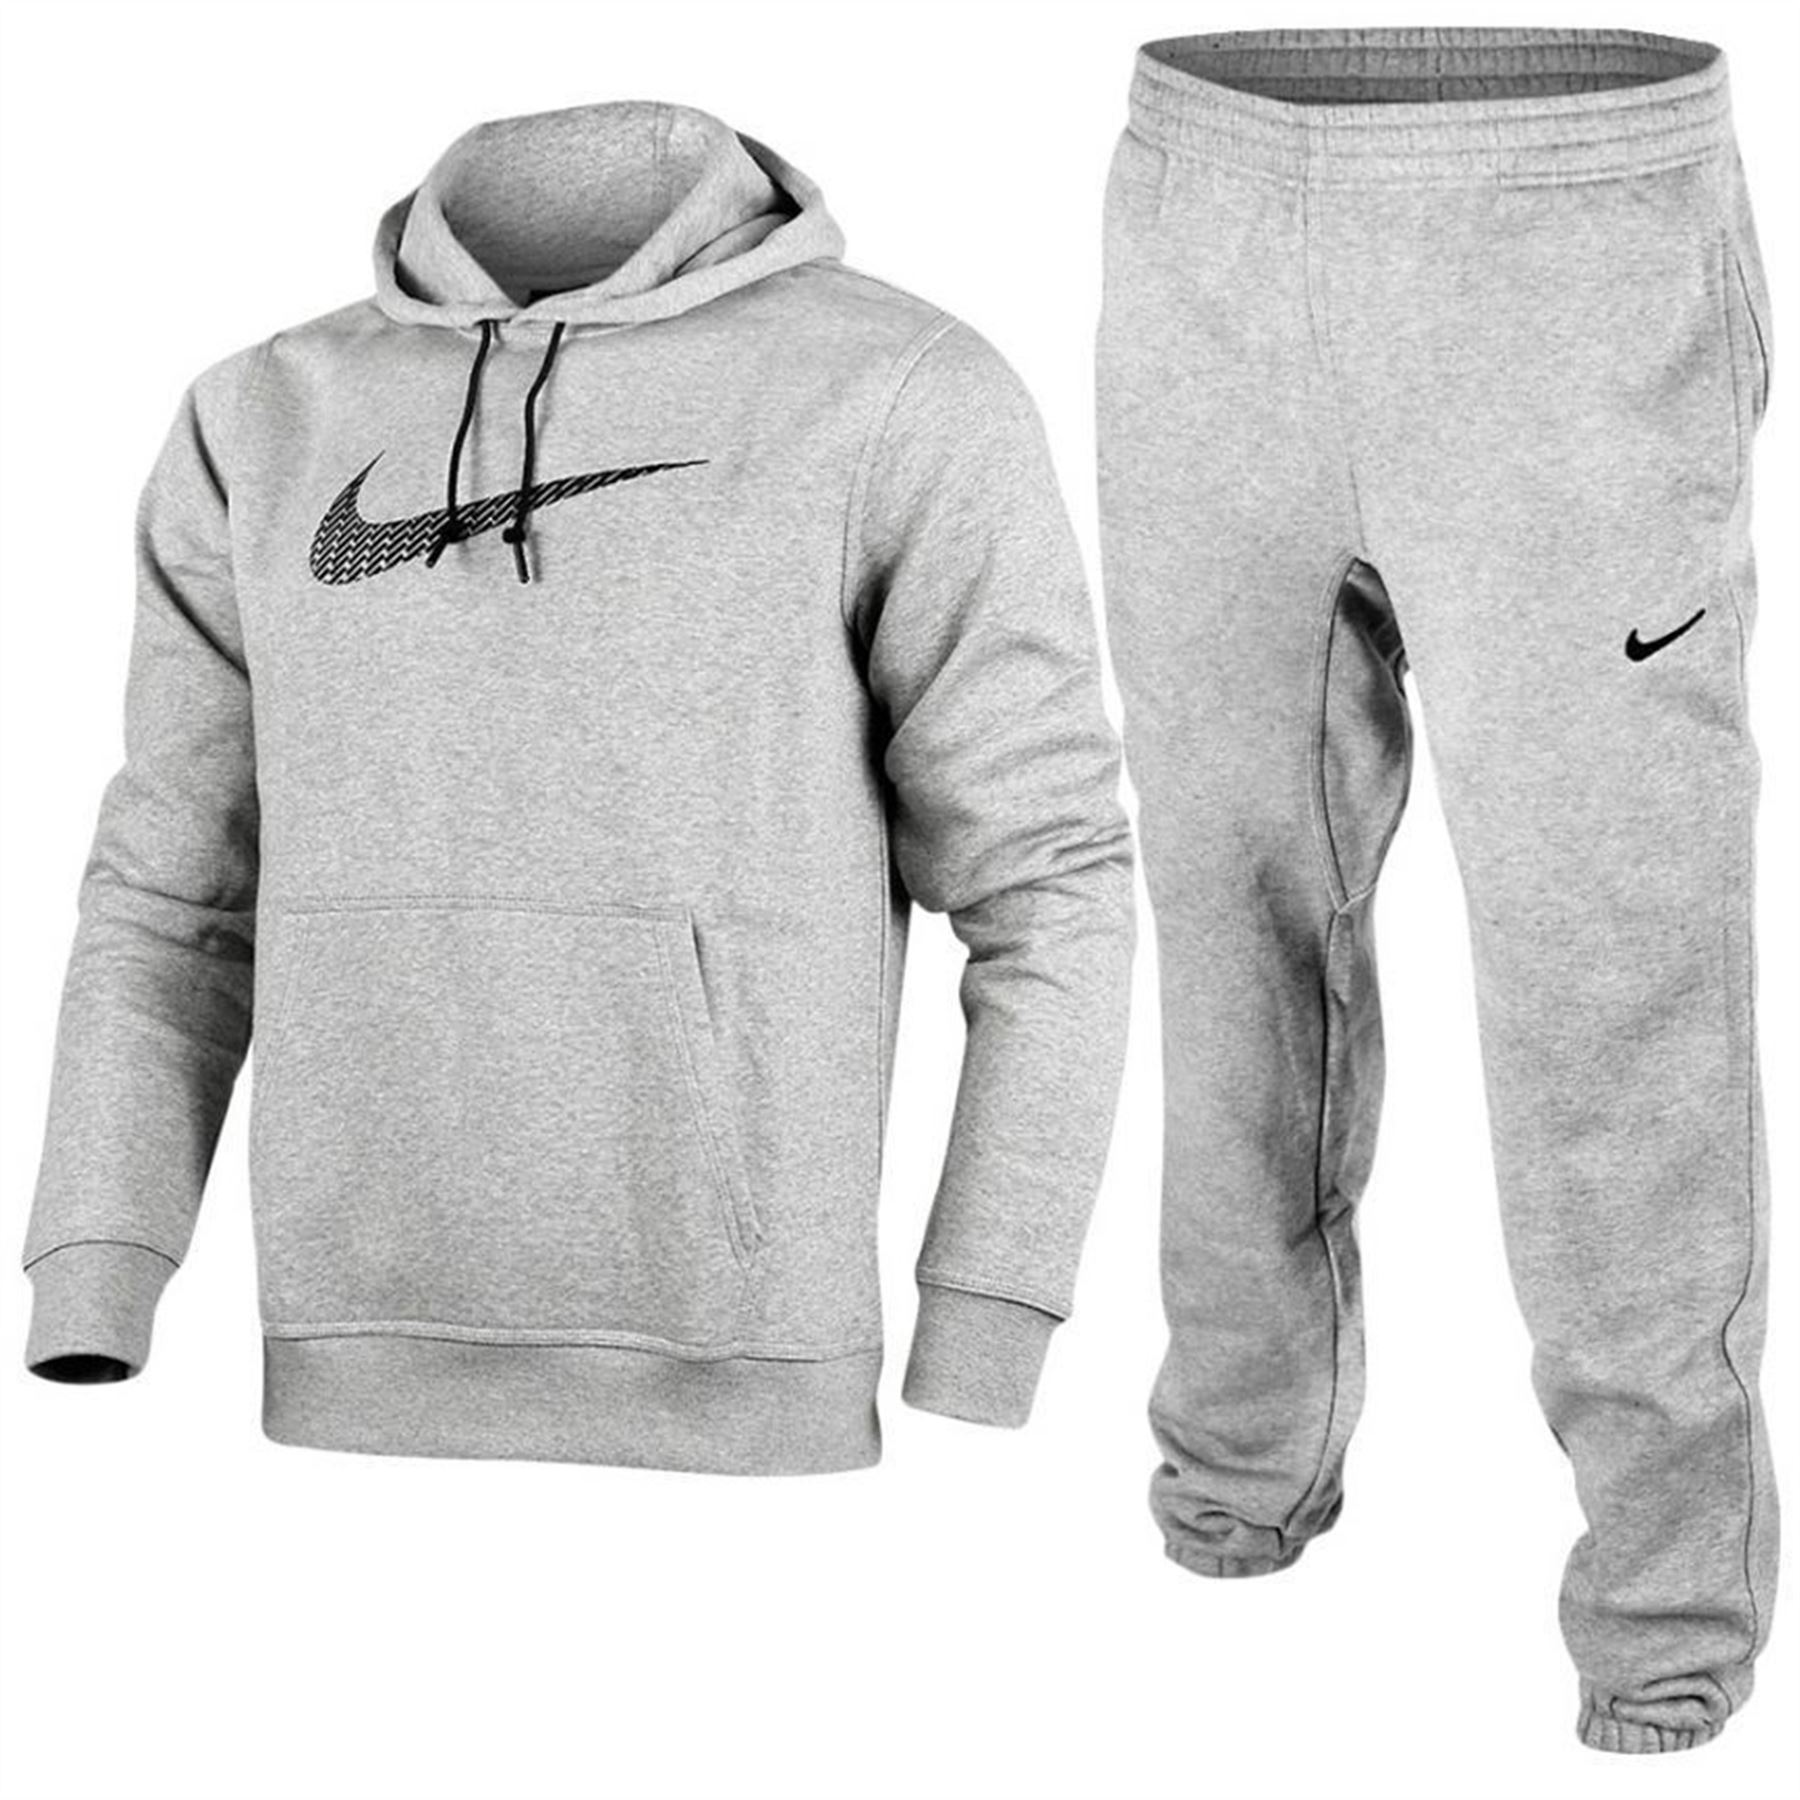 nike mens swoosh fleece overhead hoodie sweatshirt jogging. Black Bedroom Furniture Sets. Home Design Ideas